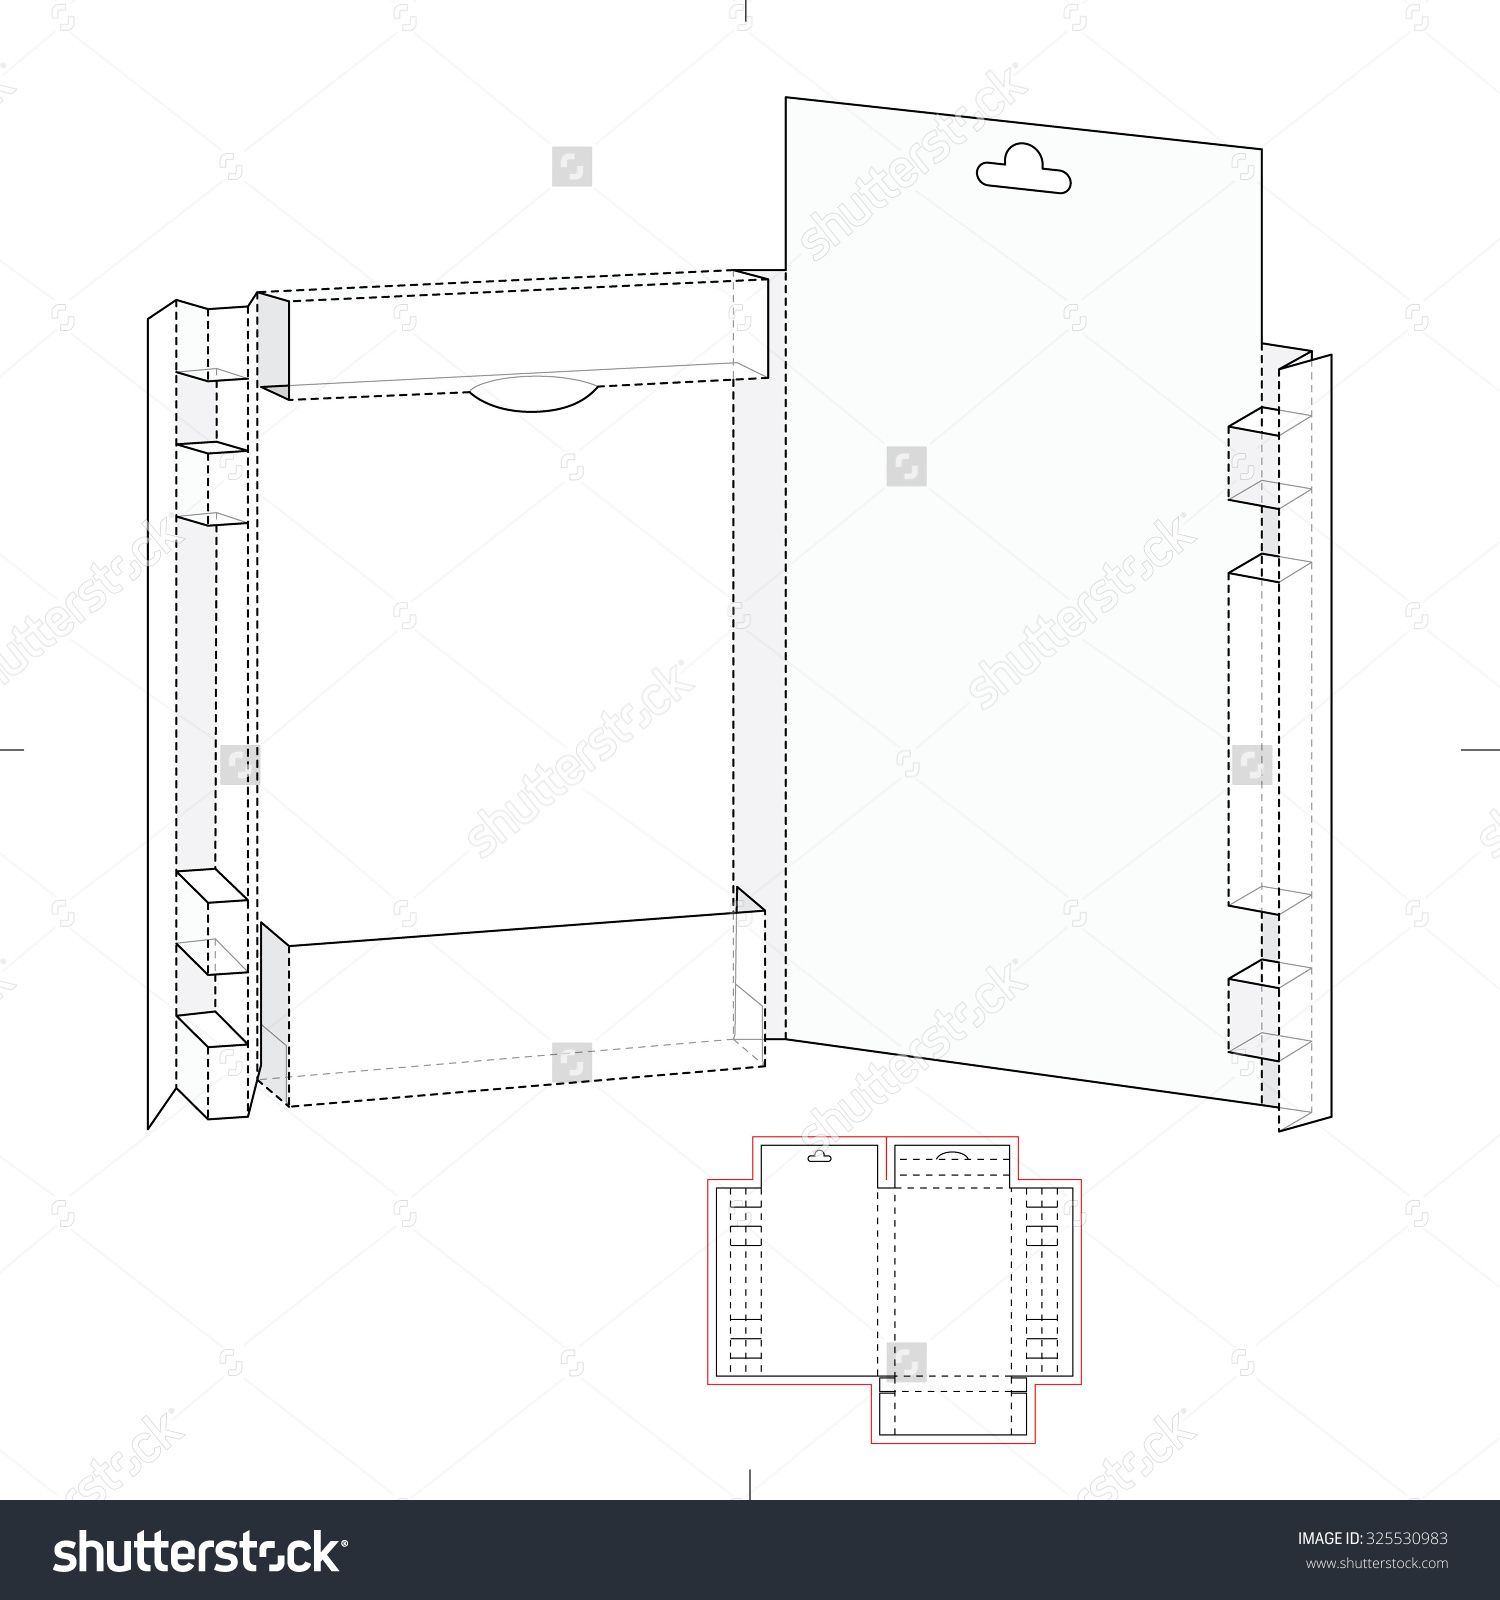 Drawing Kit Folder With Die Line Template Stock Vector Illustration 325530983 : Shutterstock